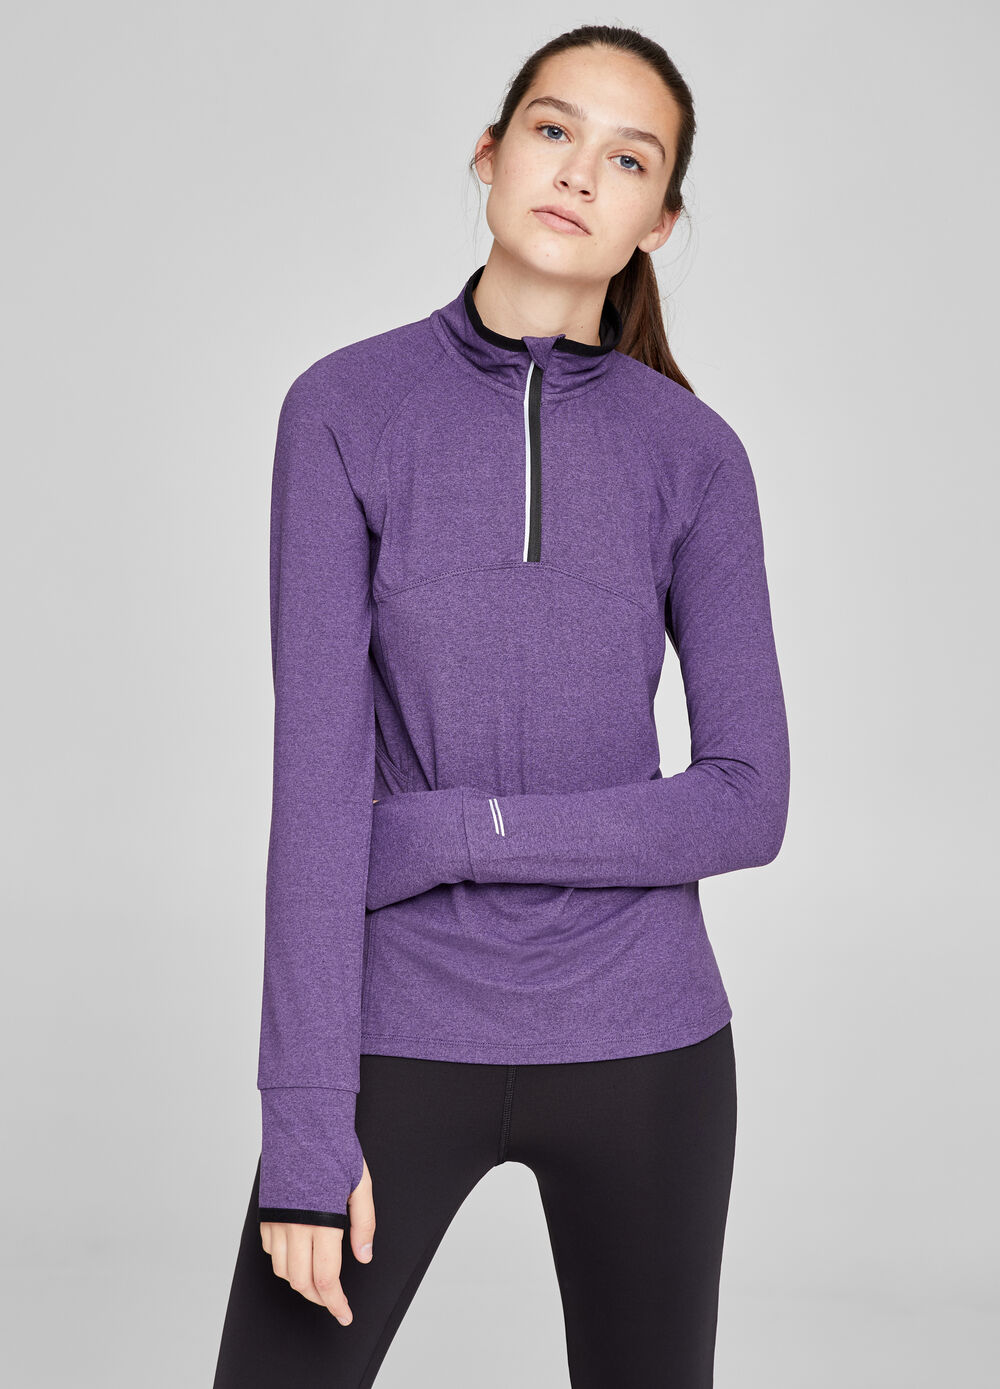 Gym sweatshirt with thumb holes